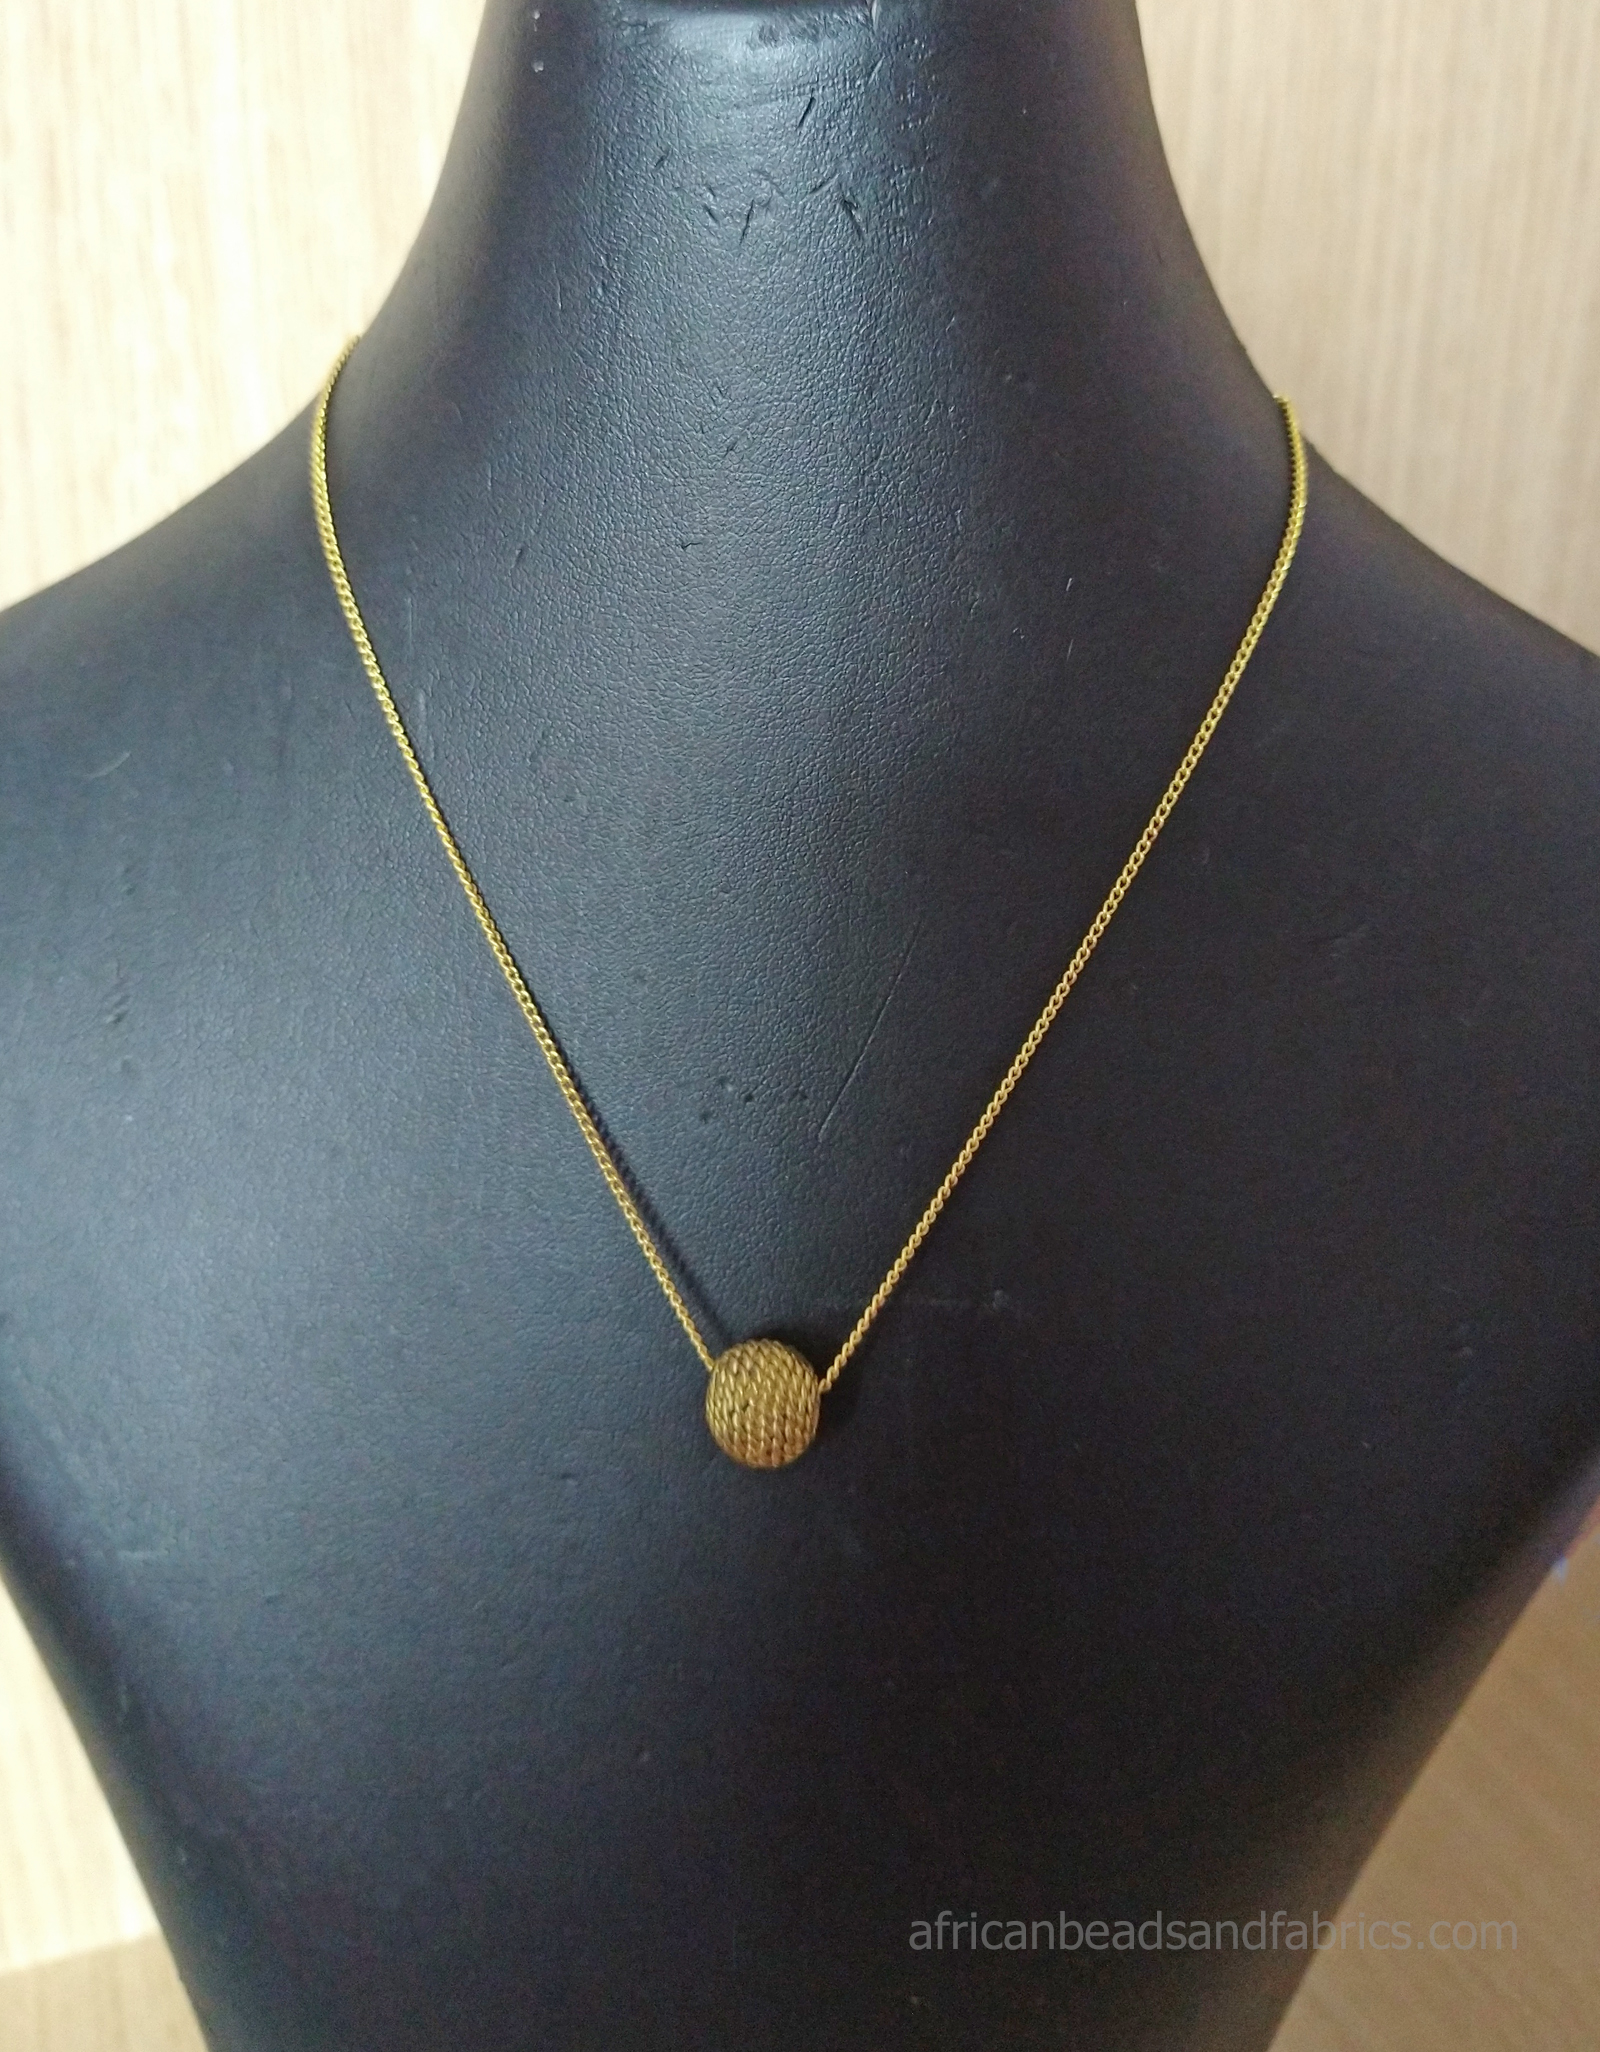 Gold Chain Necklace with African Brass Bead5